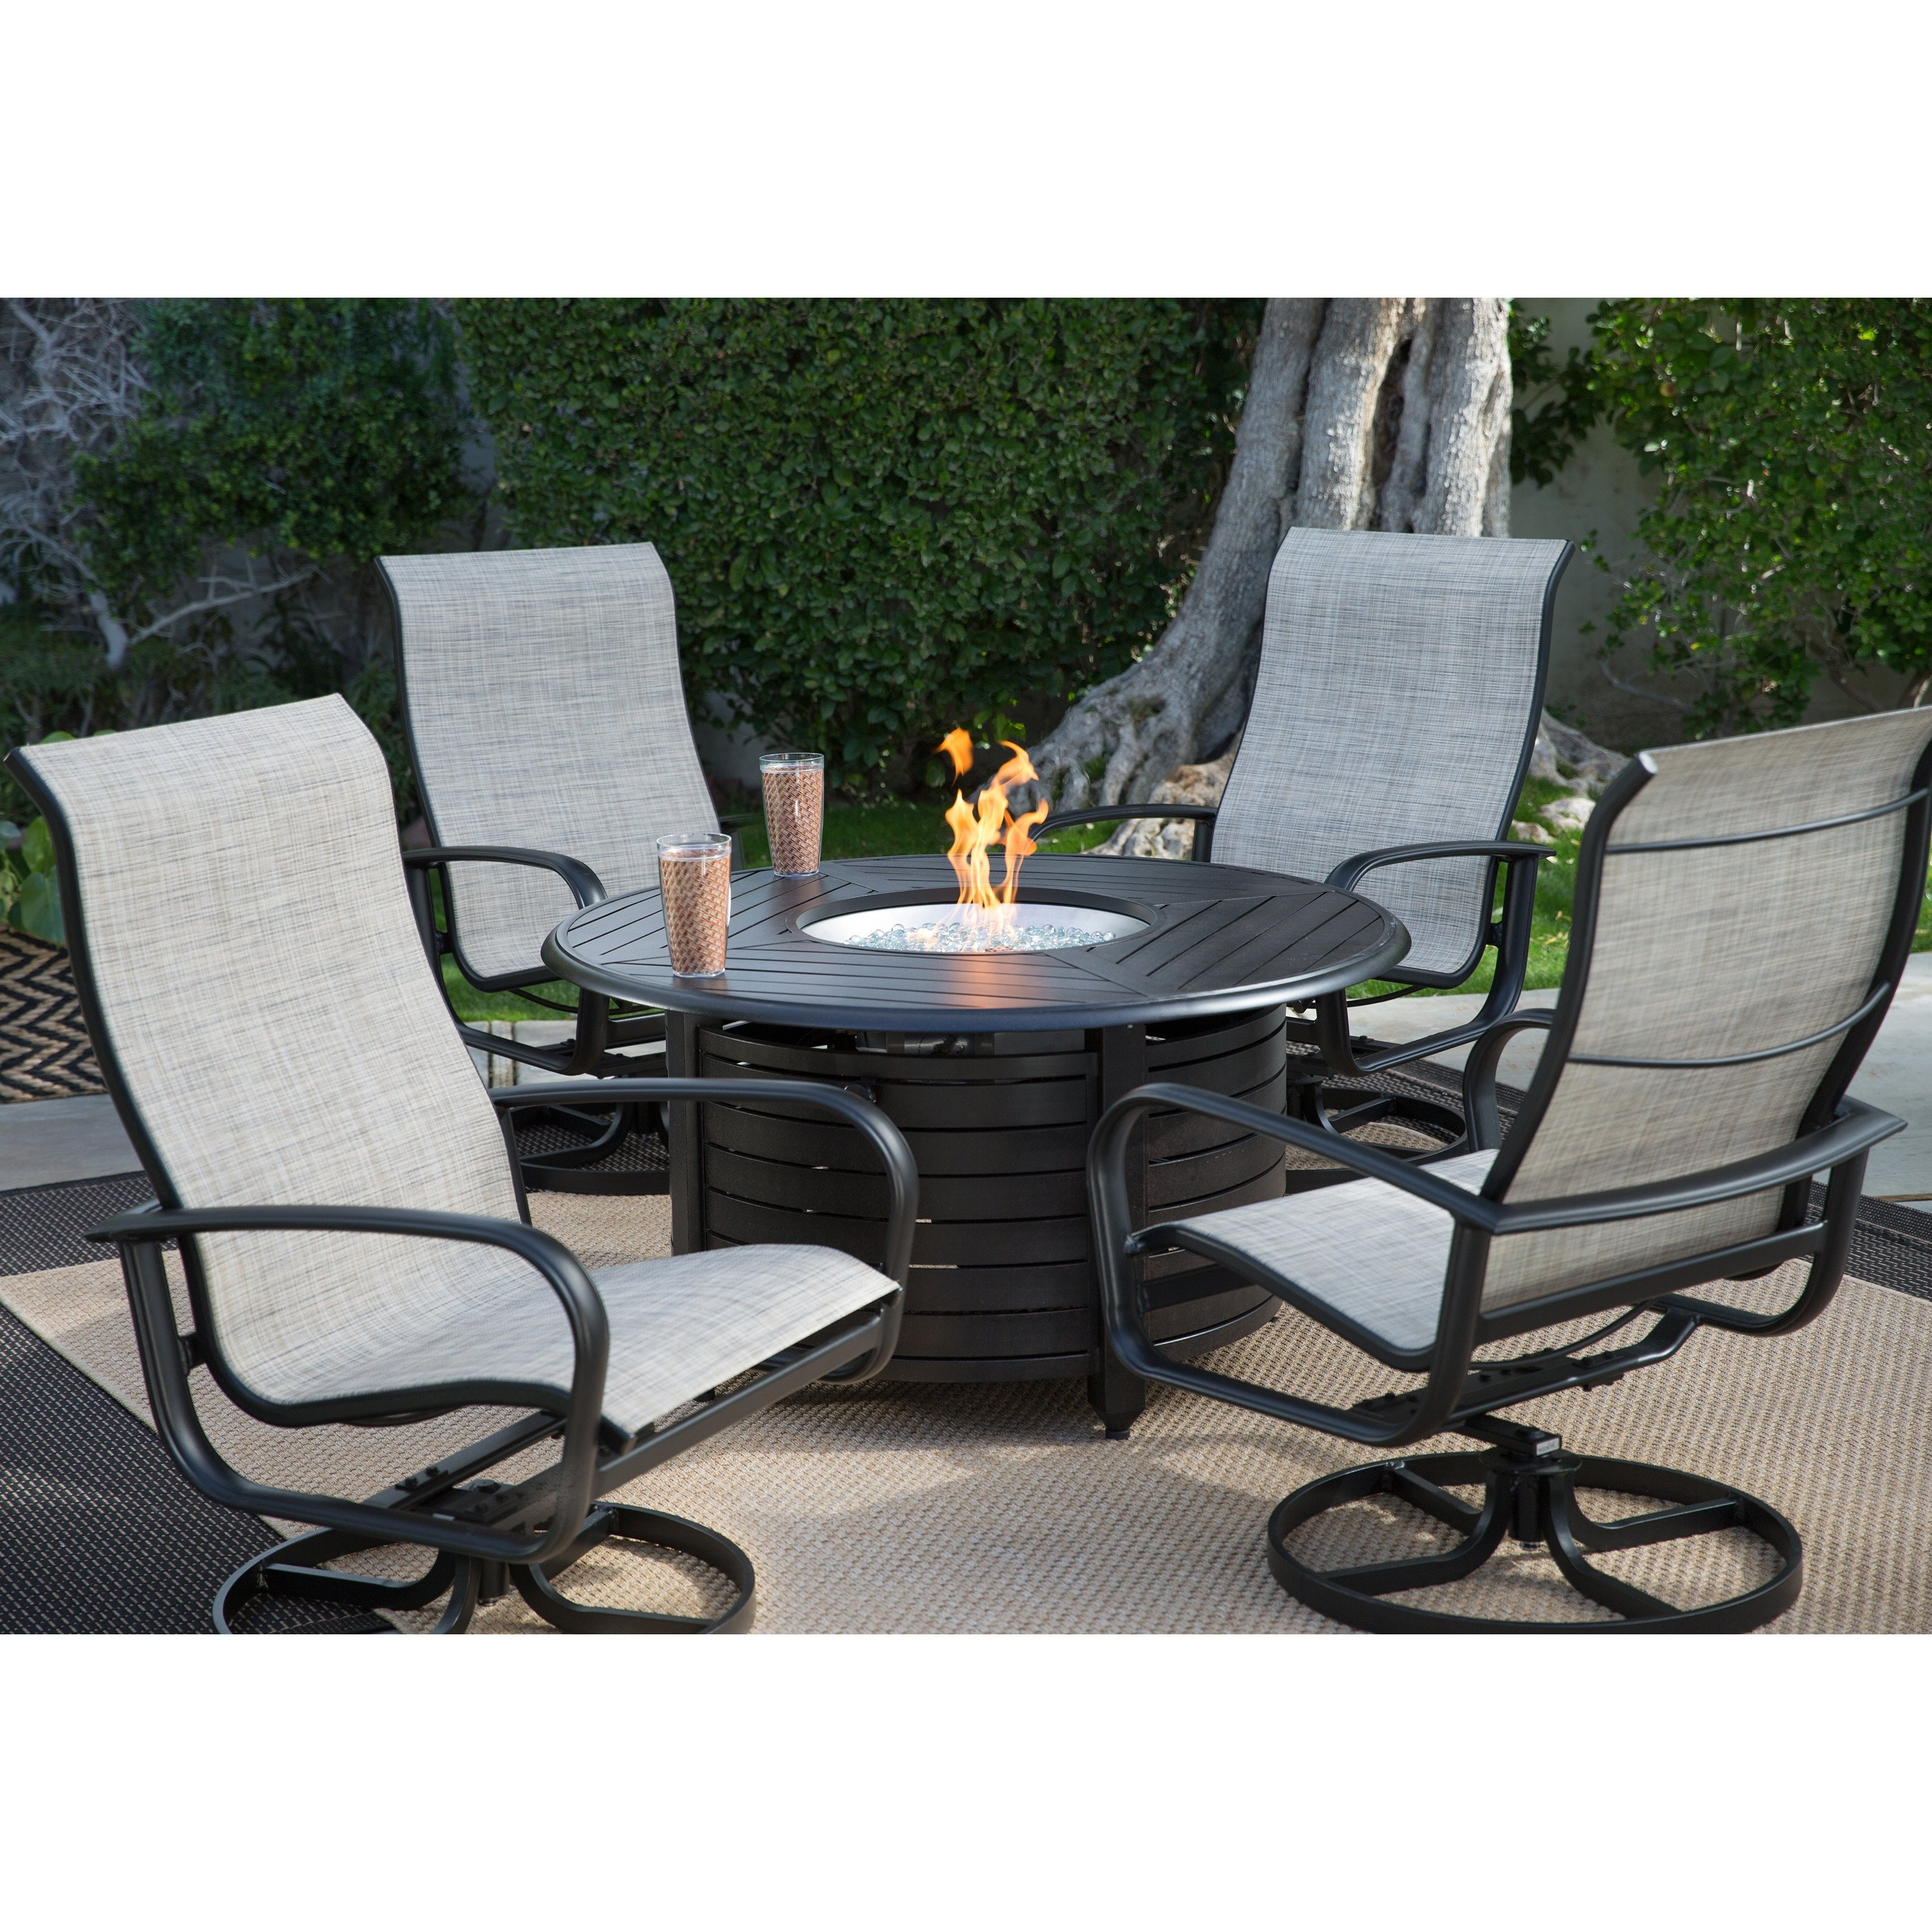 Wonderful Outdoor Conversation Sets With Fire Pit Belham Living Pertaining To Well Known Sling Patio Conversation Sets (View 20 of 20)